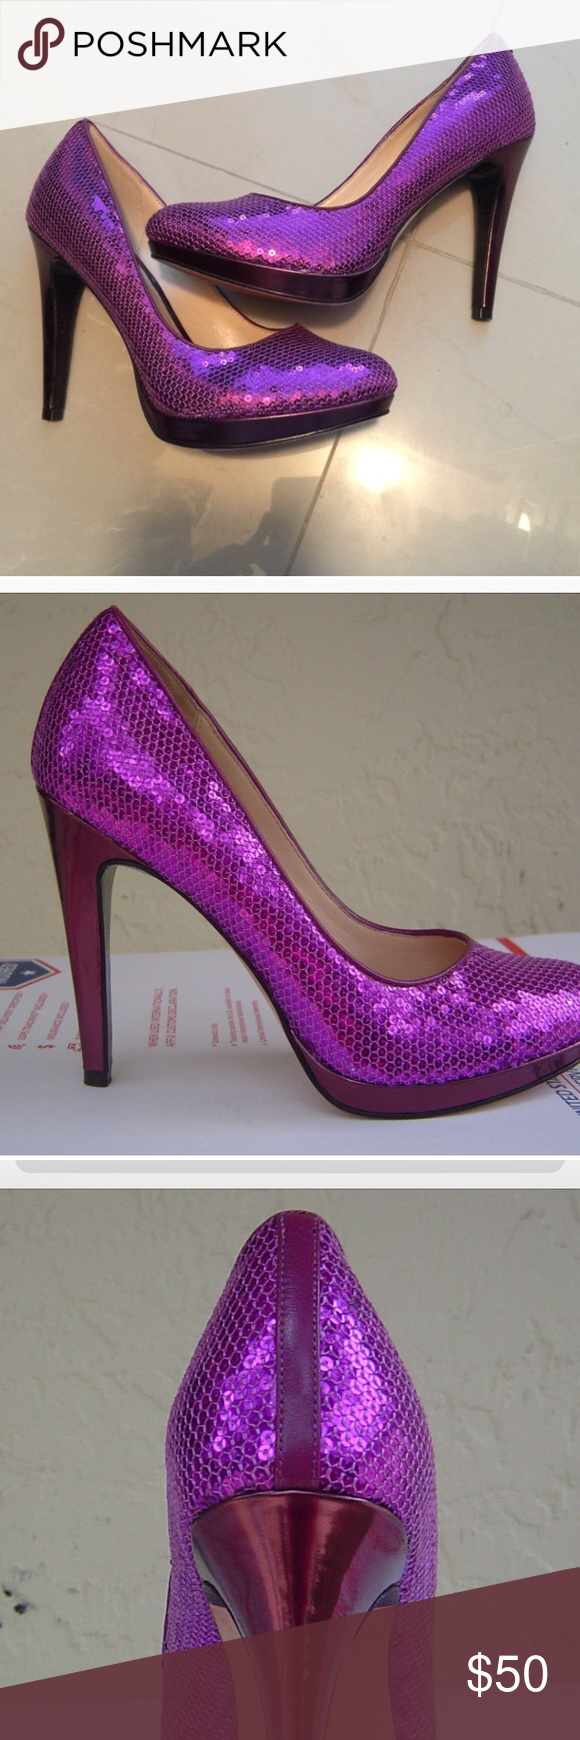 3f23edbc604 Cole Haan Purple Sequin Pump Size 8 Cole Haan Nike Air purple Sequin ...